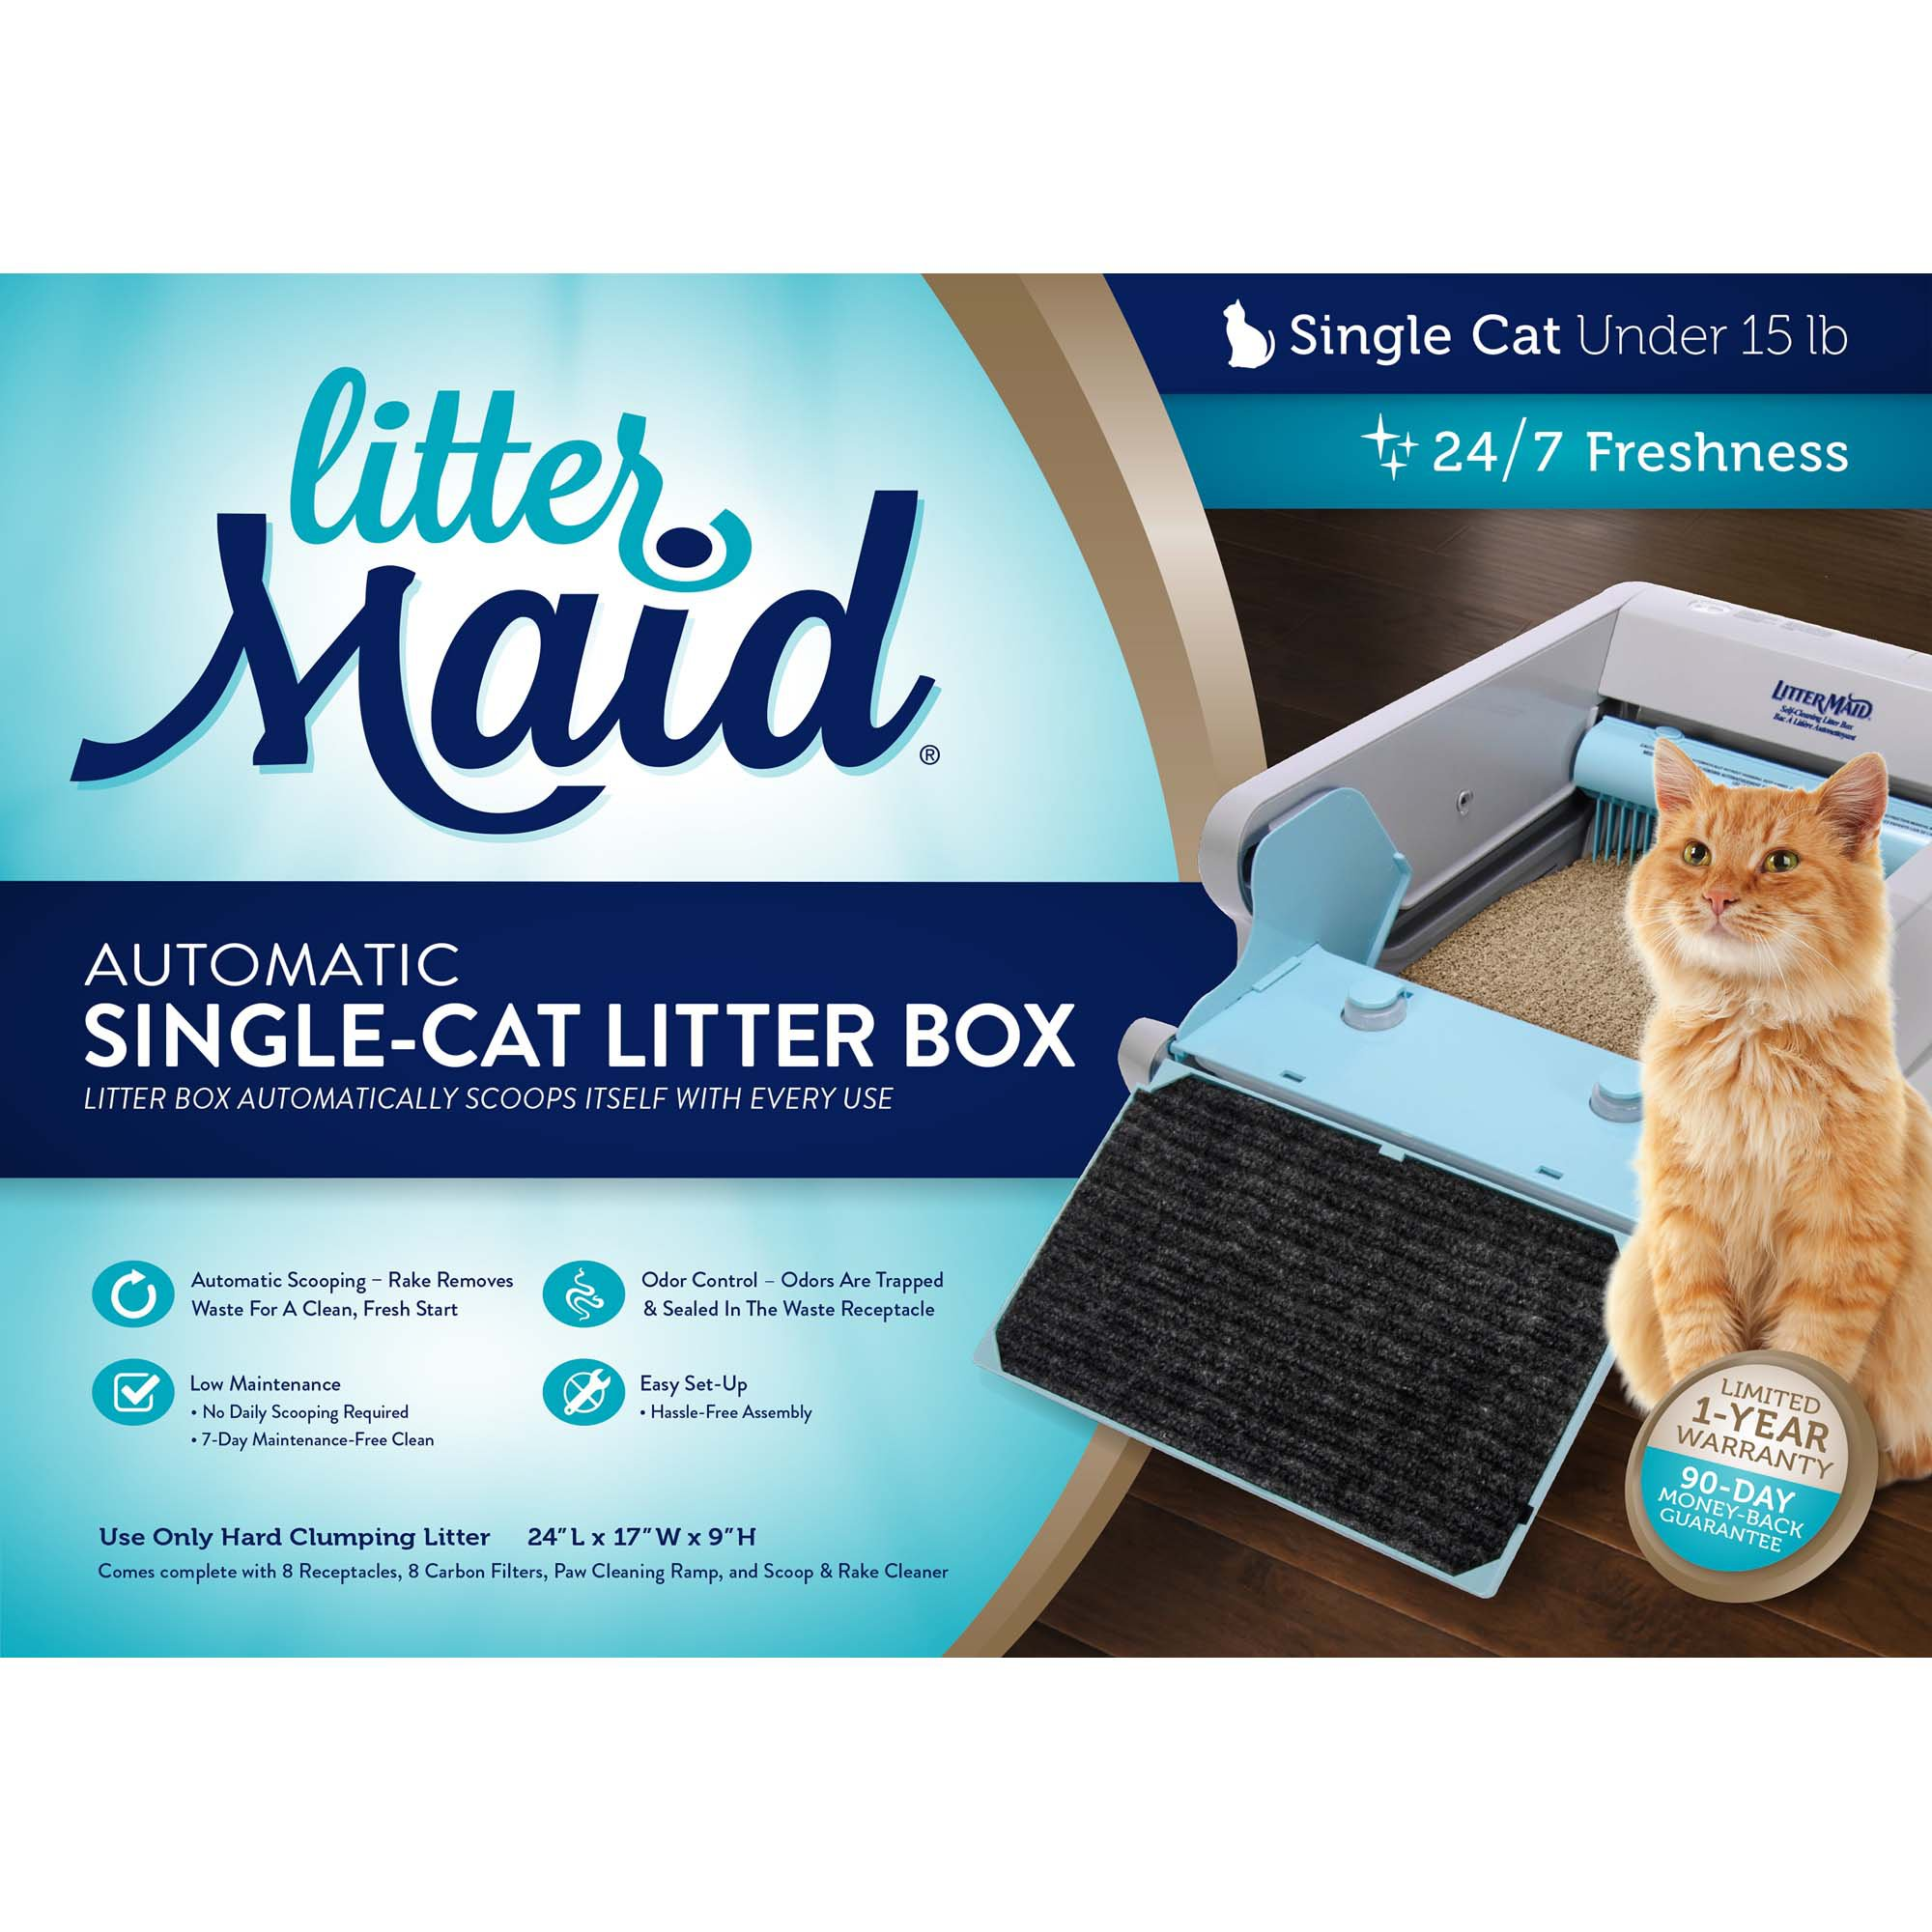 LitterMaid Automatic SelfCleaning Litter Box Petco